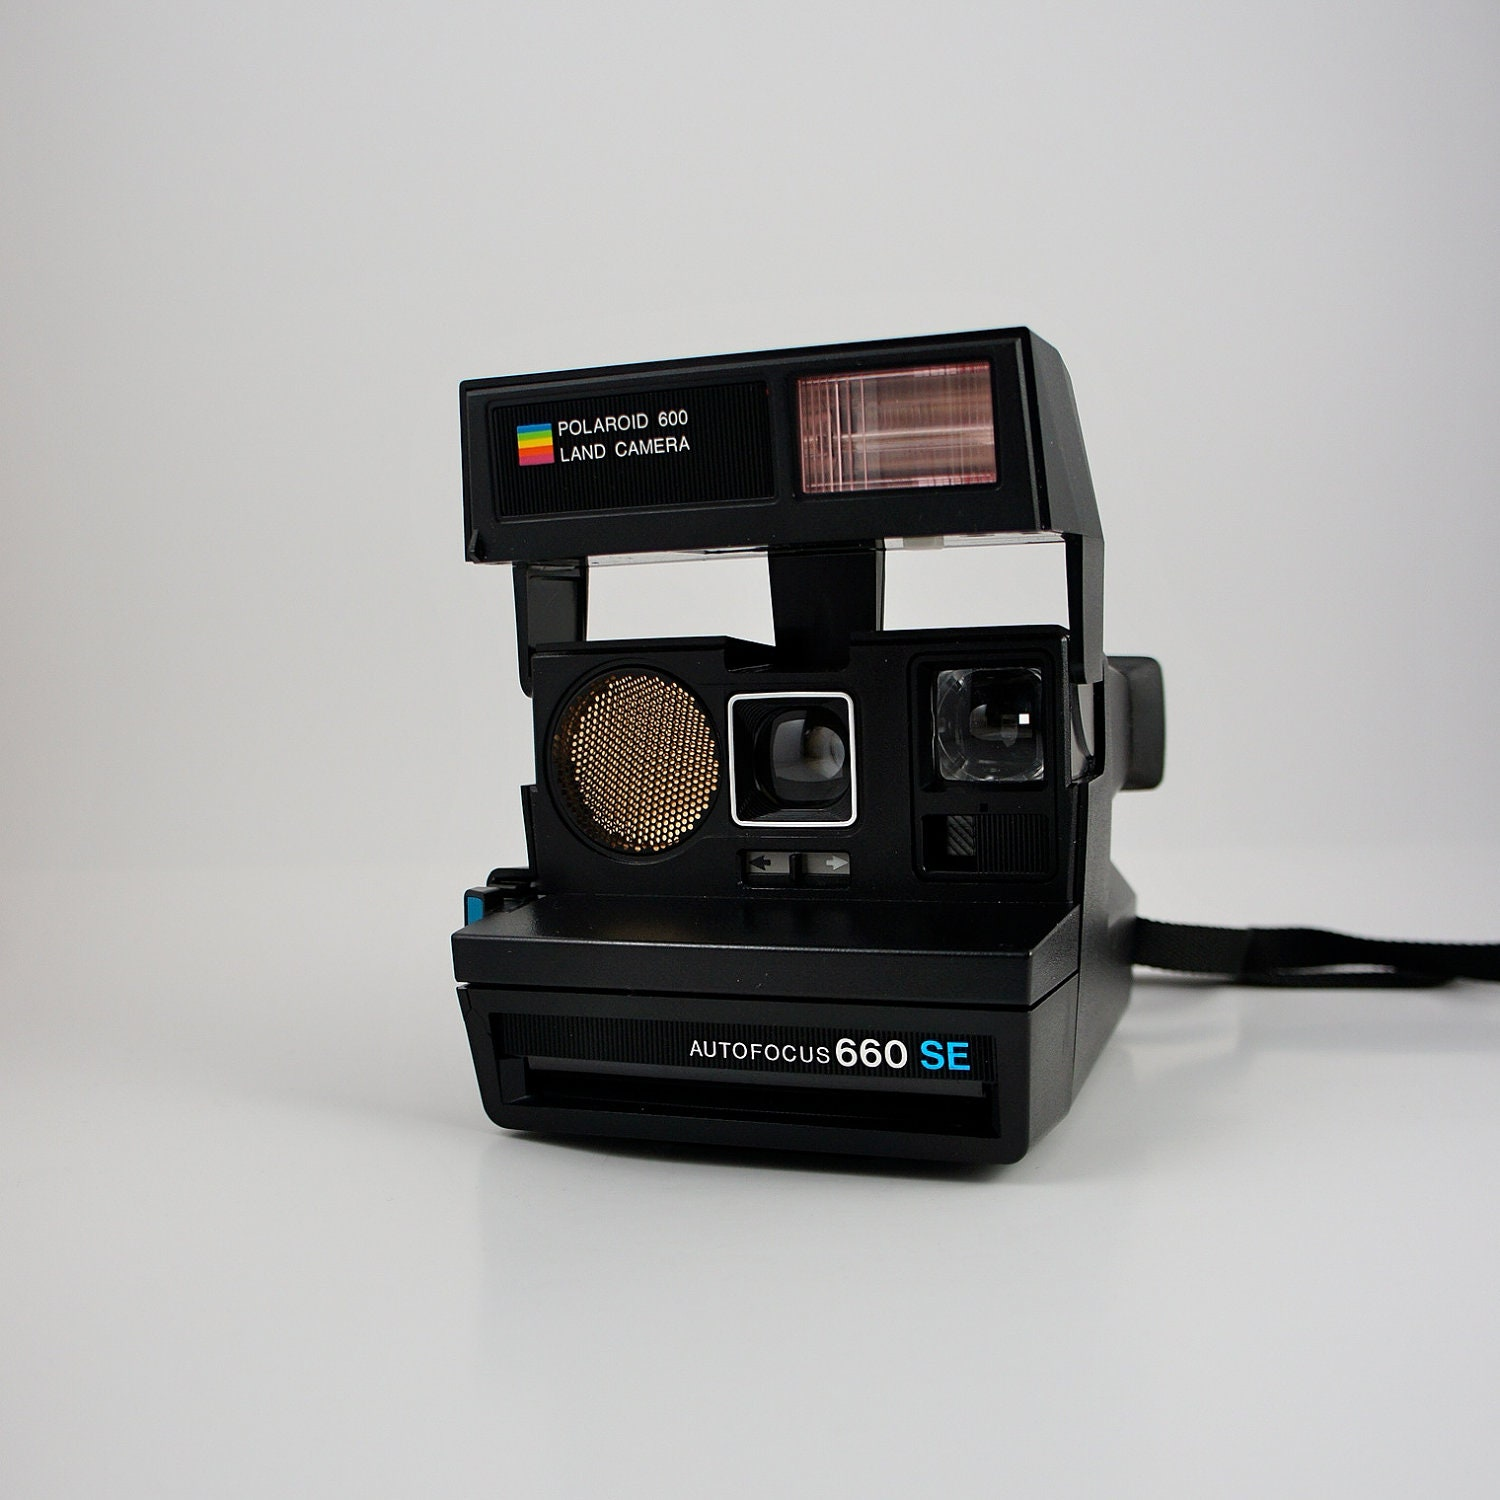 polaroid autofocus 660 se land camera 600 film by boomvintage. Black Bedroom Furniture Sets. Home Design Ideas